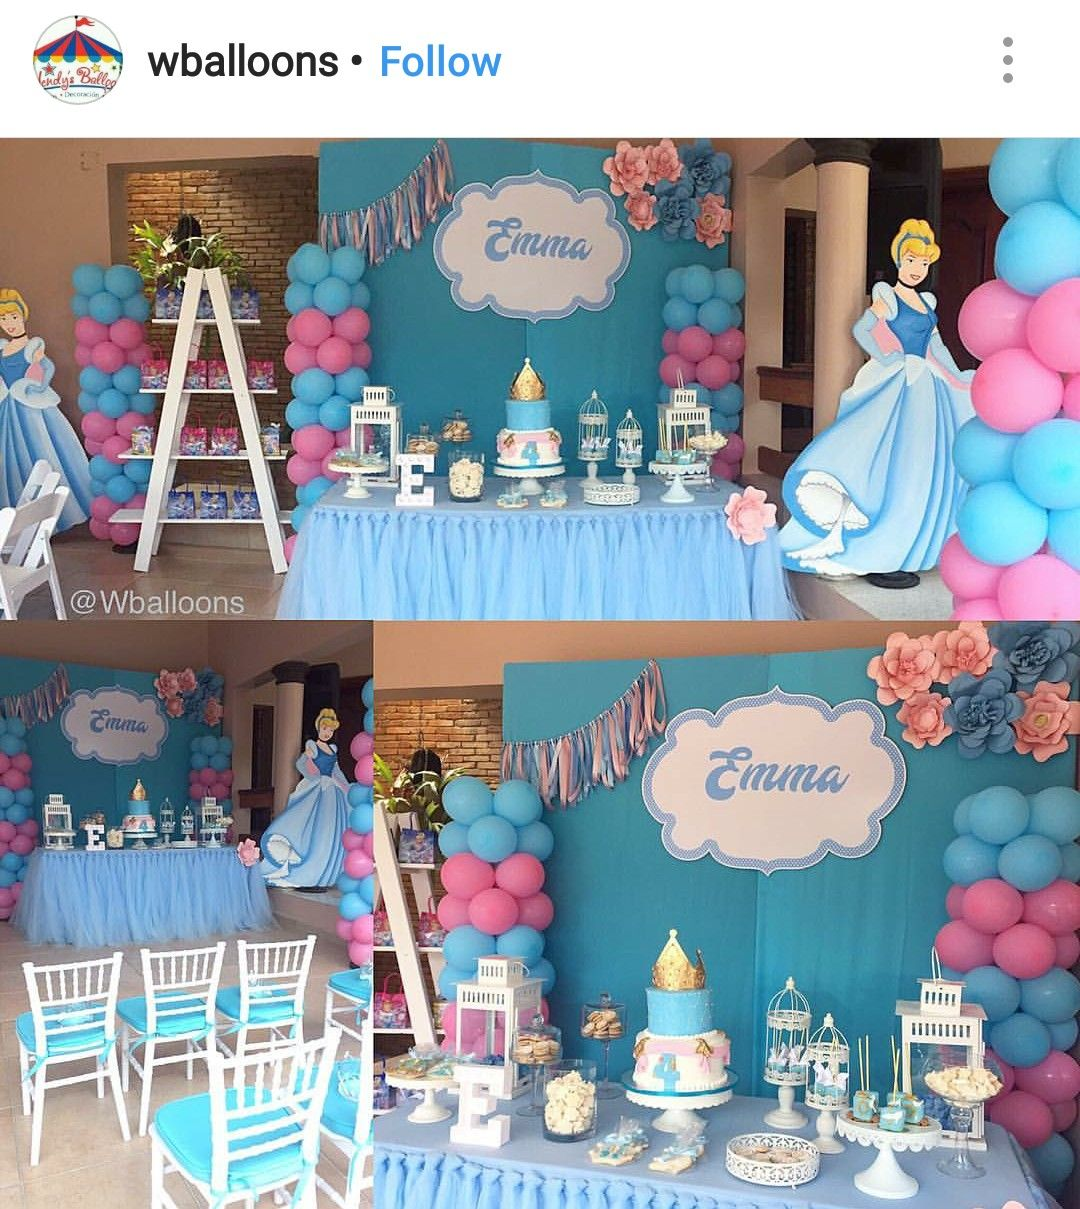 Cinderella Birthday Party Dessert Table And Decor Cinderella Birthday Party Theme Cinderella Birthday Party Cinderella Birthday Party Decorations